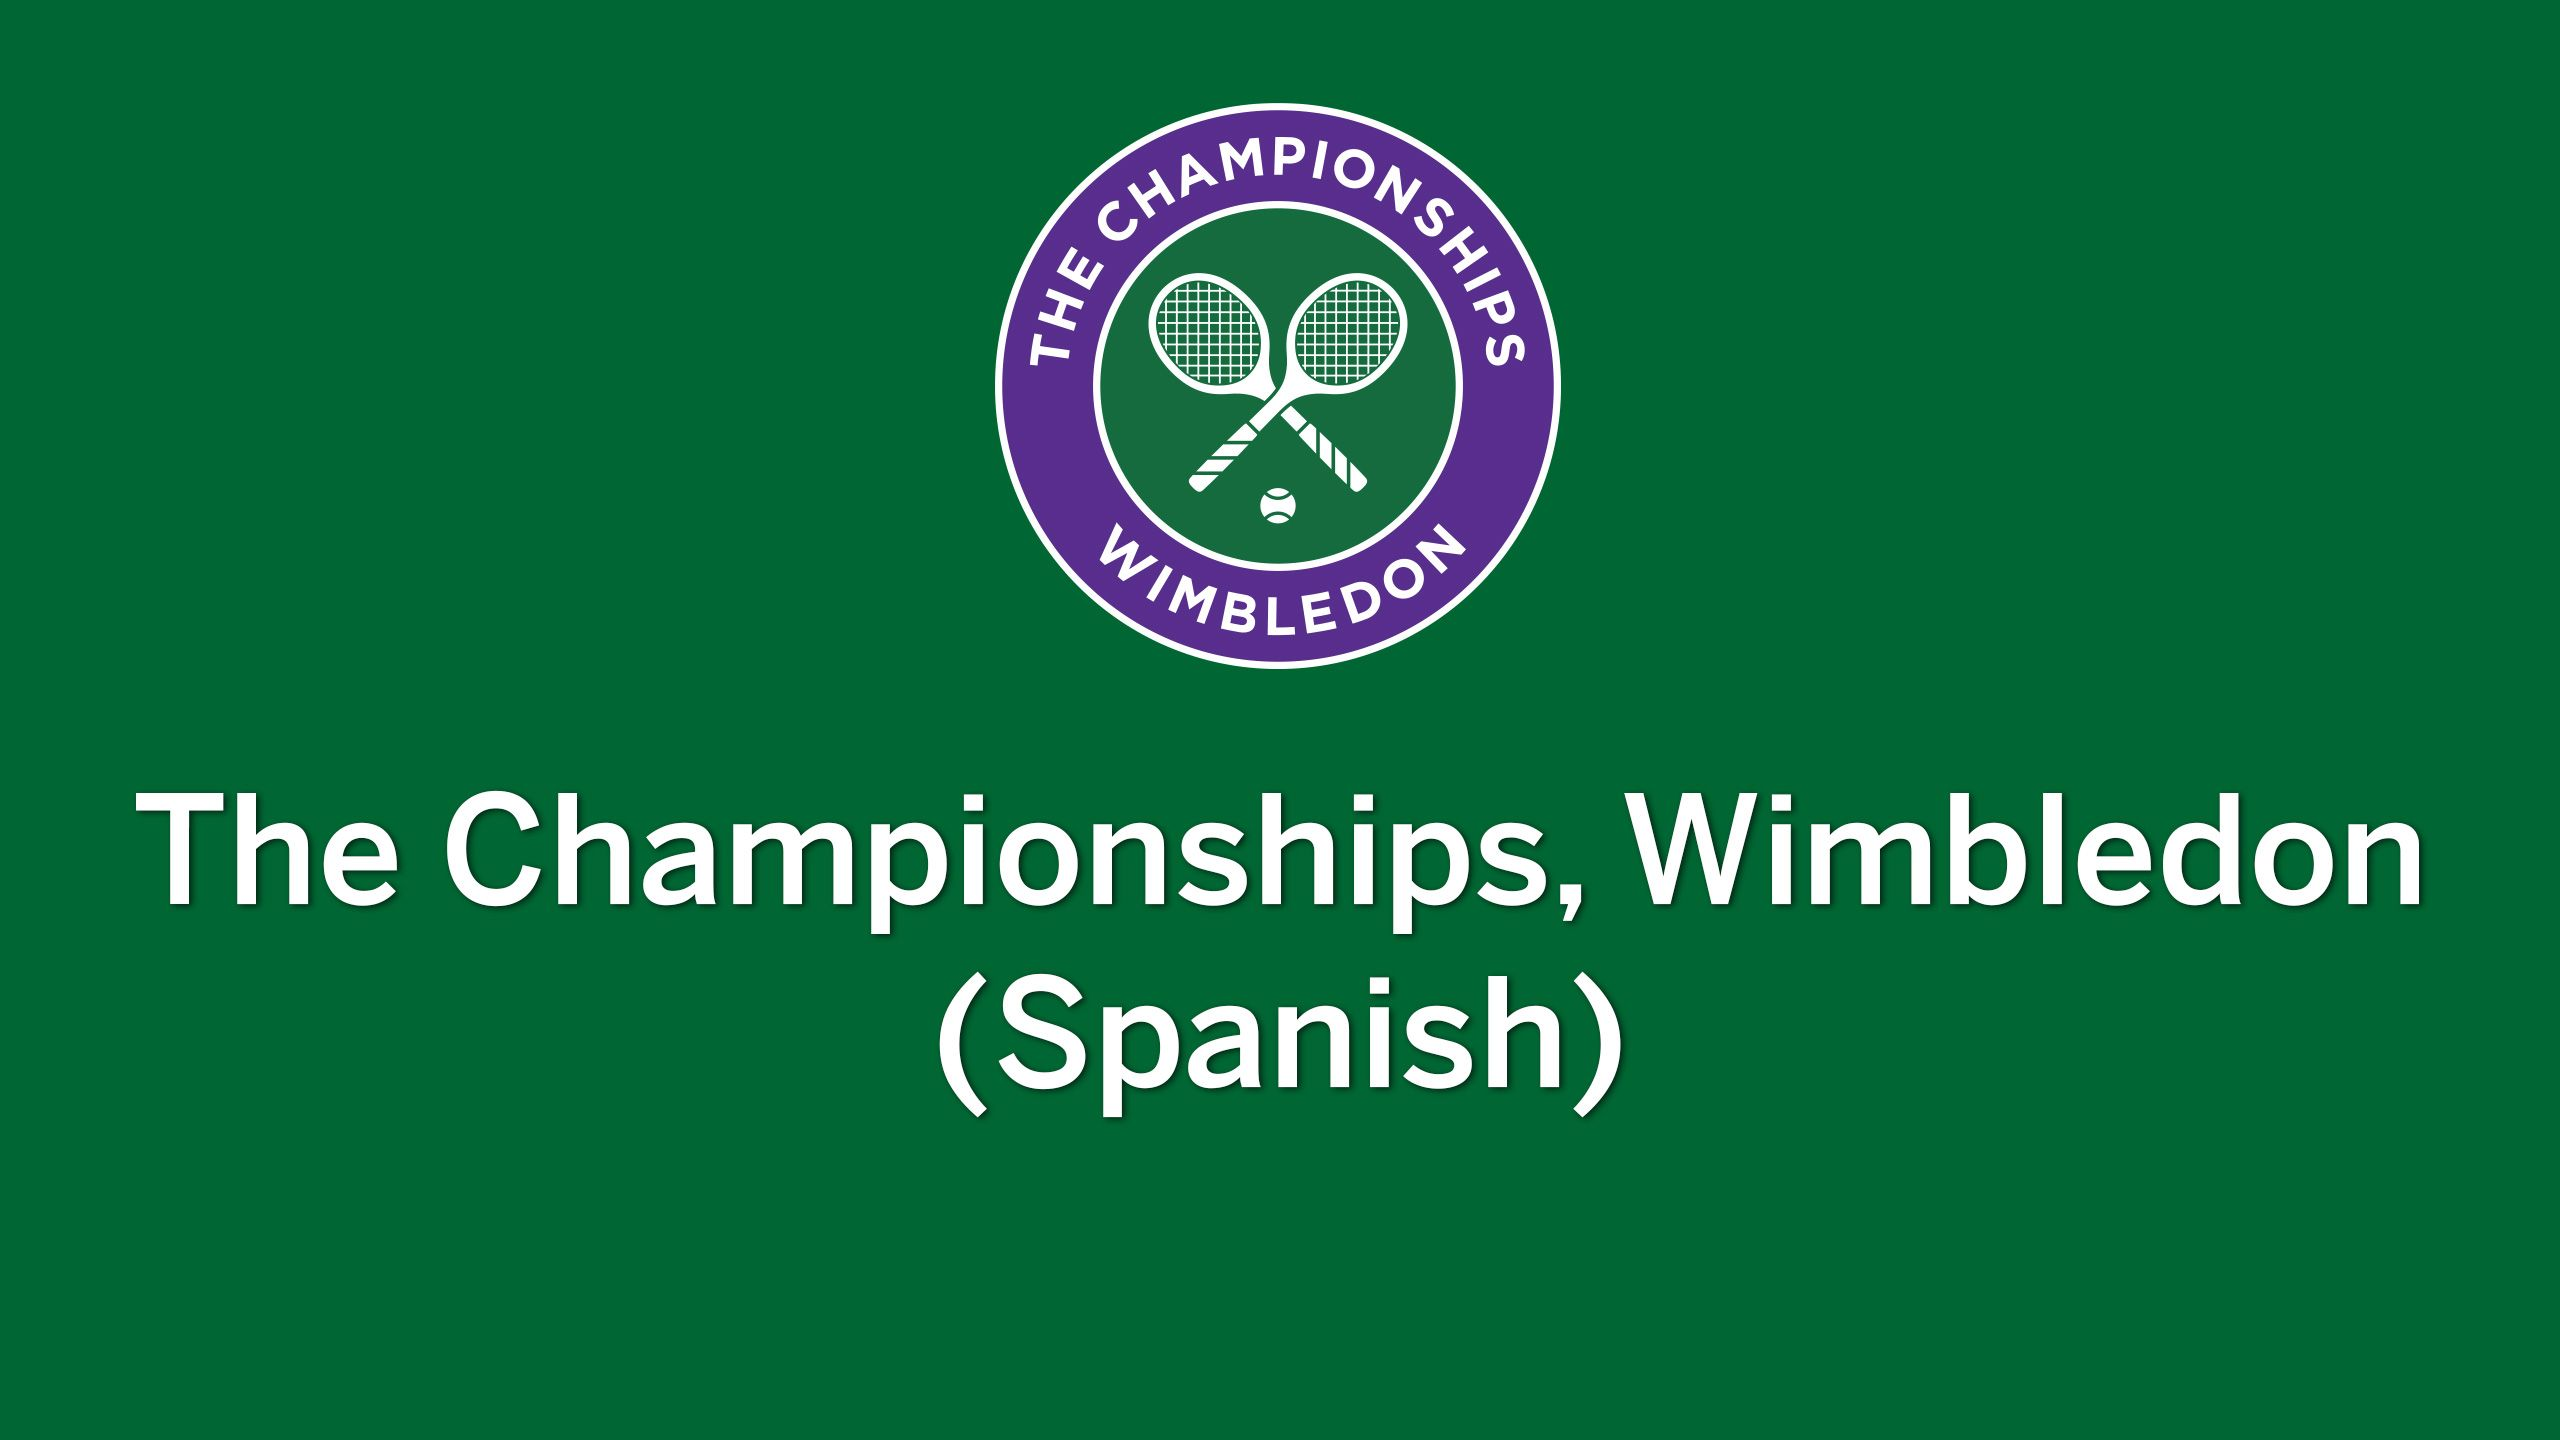 Wimbledon Tennis Championships - In Spanish (Third Round)